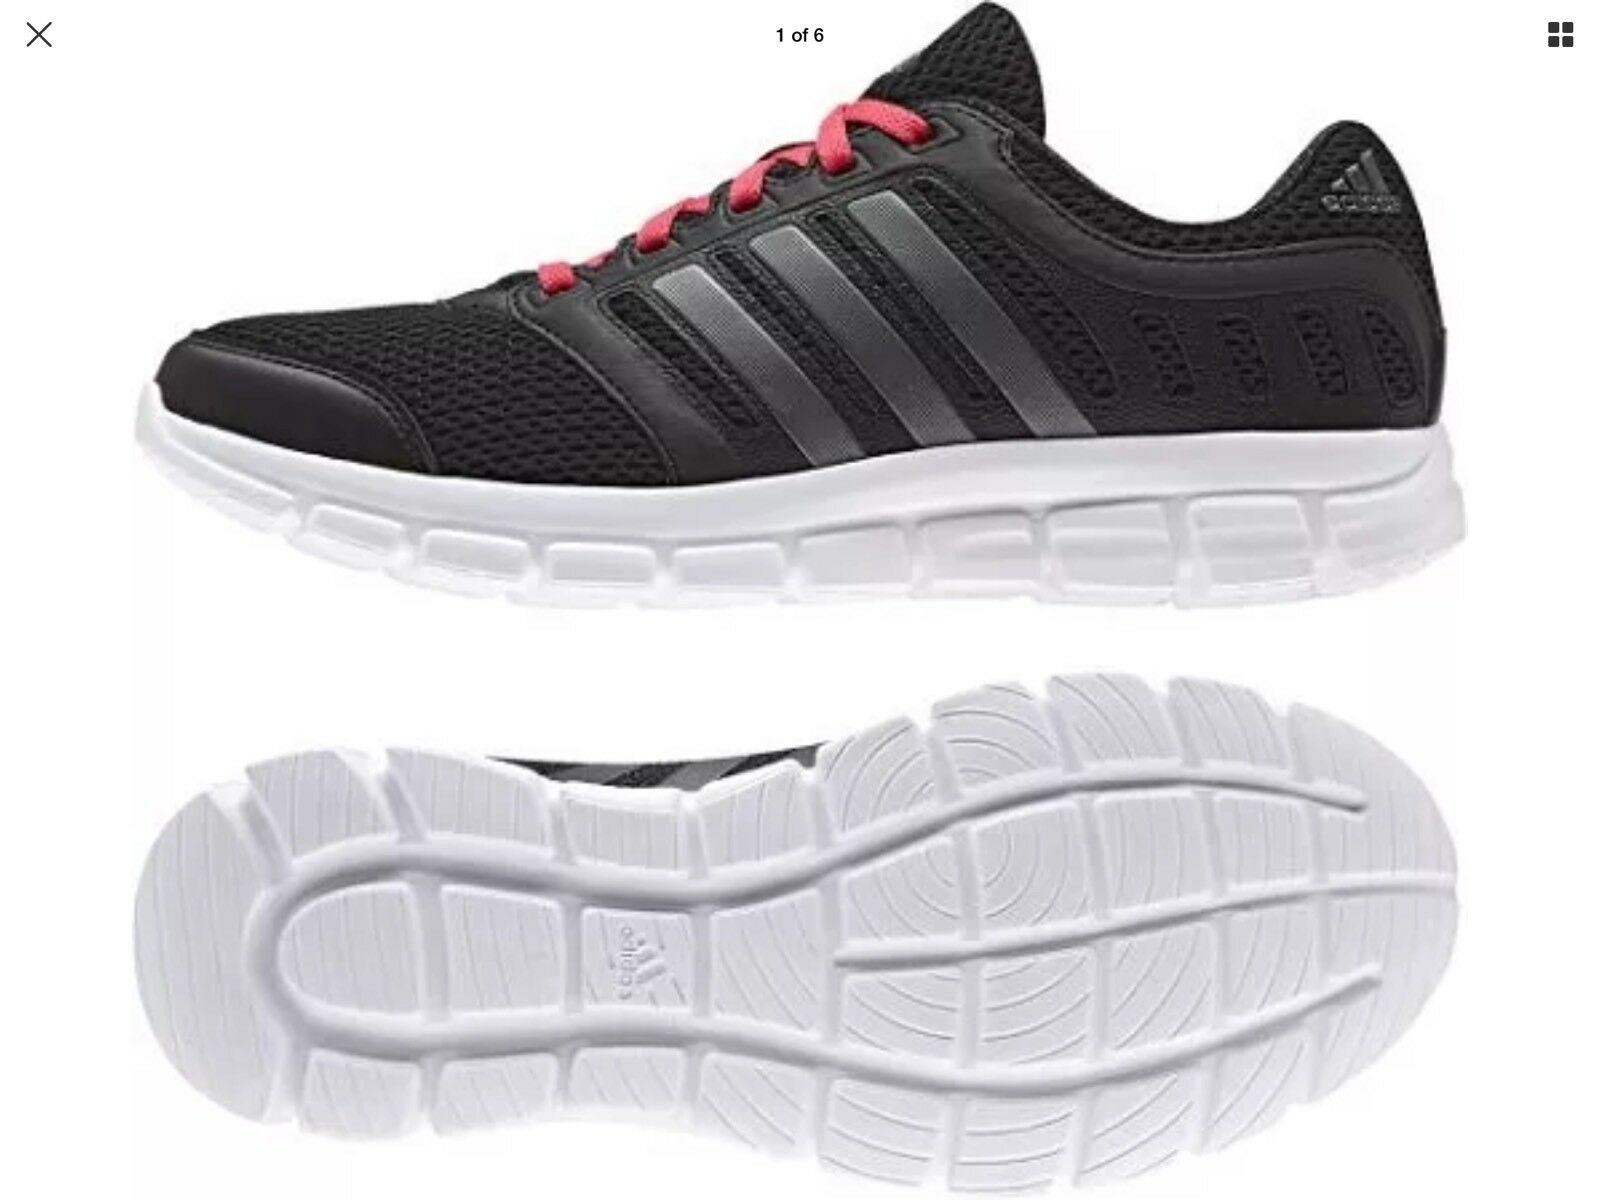 Adidas Performance Breeze 101 2 Damenschuhe trainers Turnschuhe Boxed deliv AF5345 free deliv Boxed b8801f